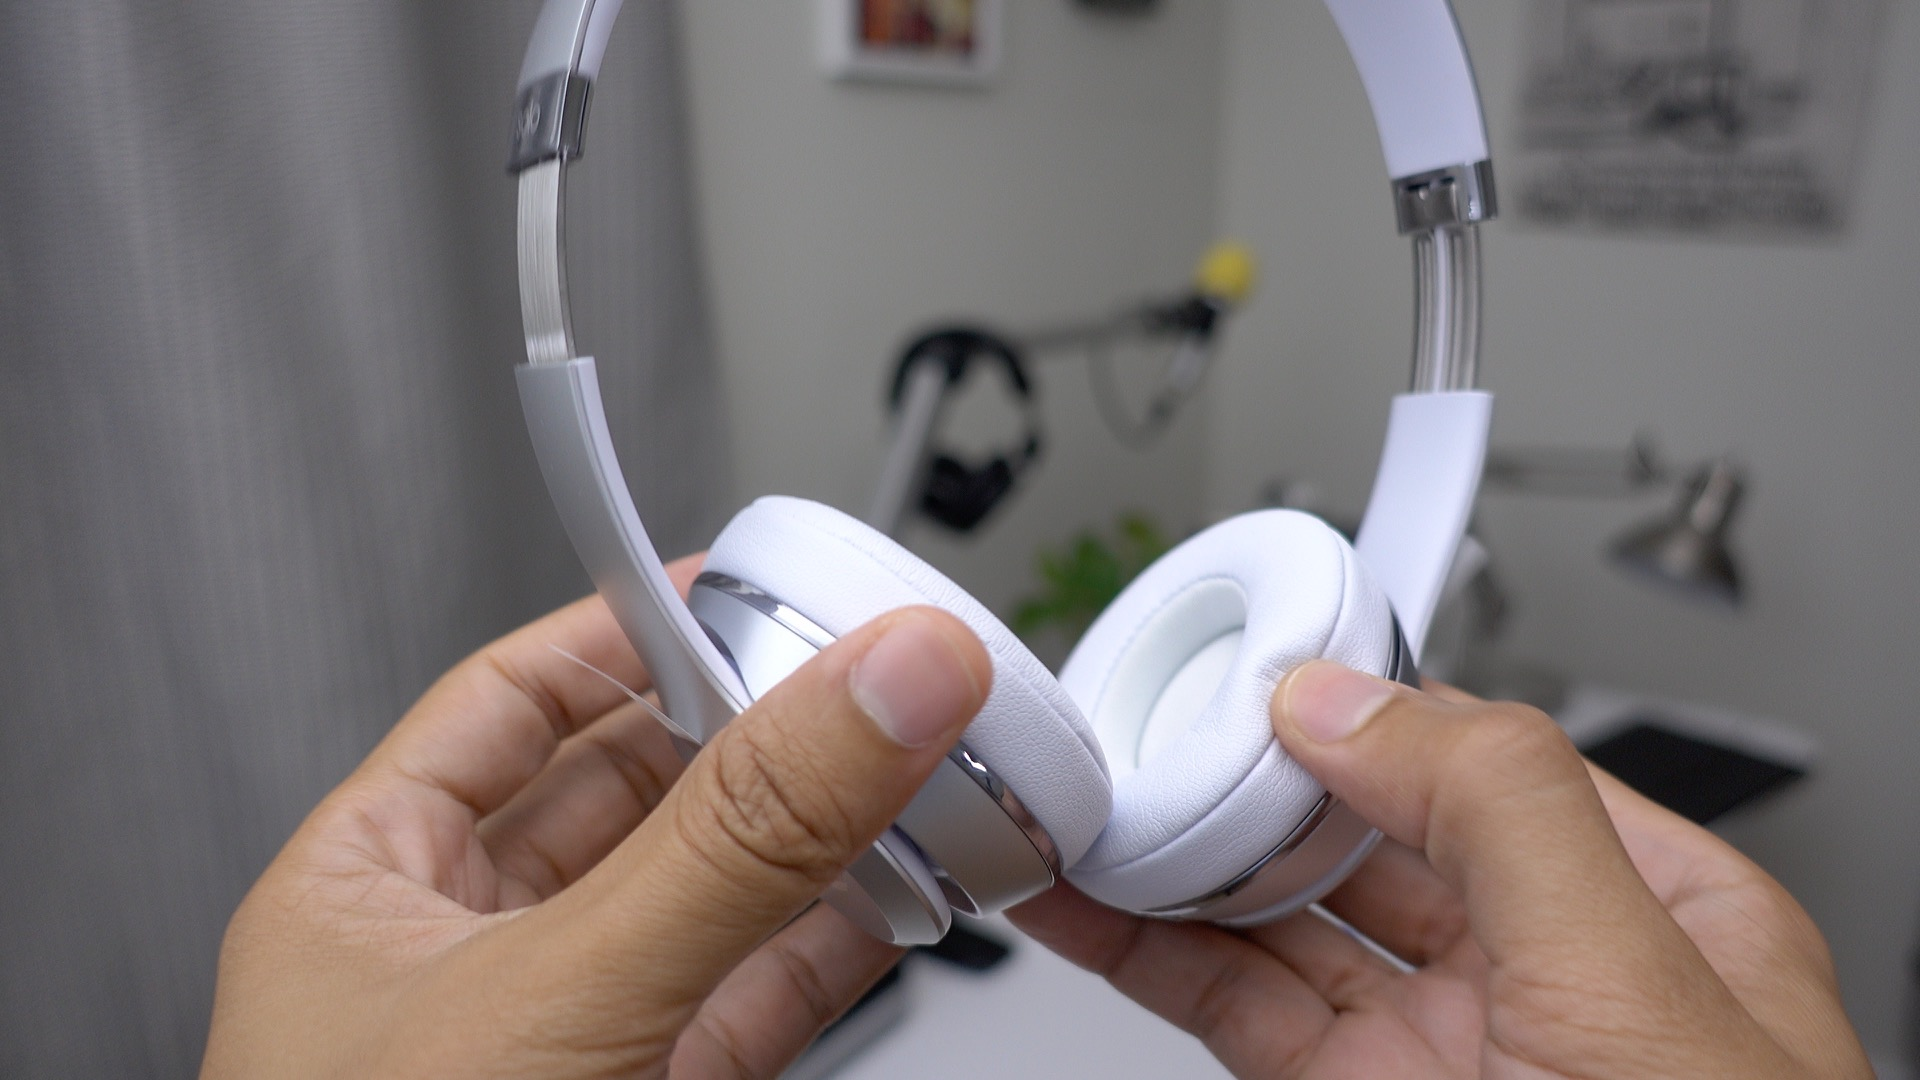 Hands On Beats Solo3 Wireless The First Available Headphones Headphone Jack Wiring Diagram Solo 3